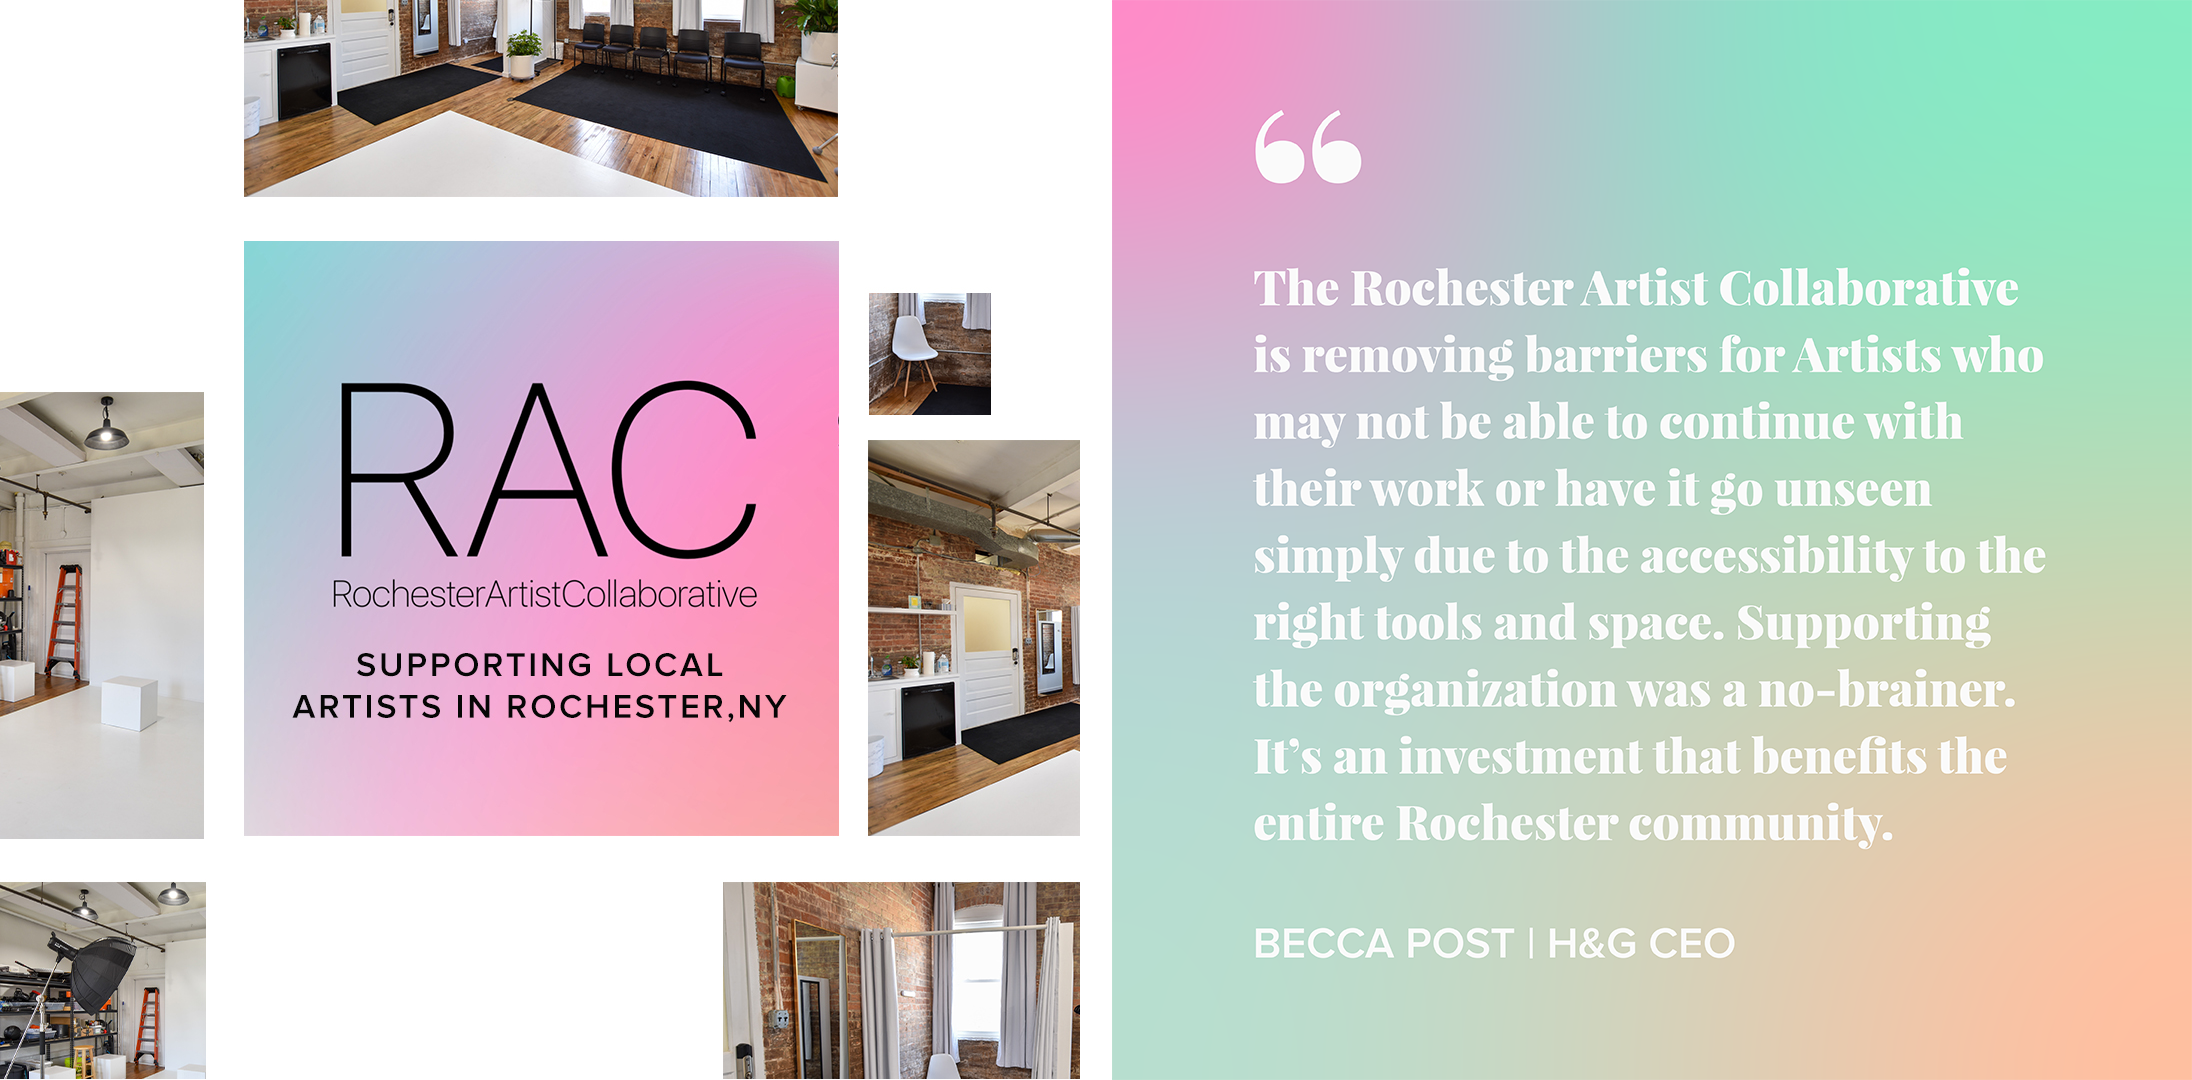 Collage of RAC studio space with a quote from H&G CEO, Becca Post